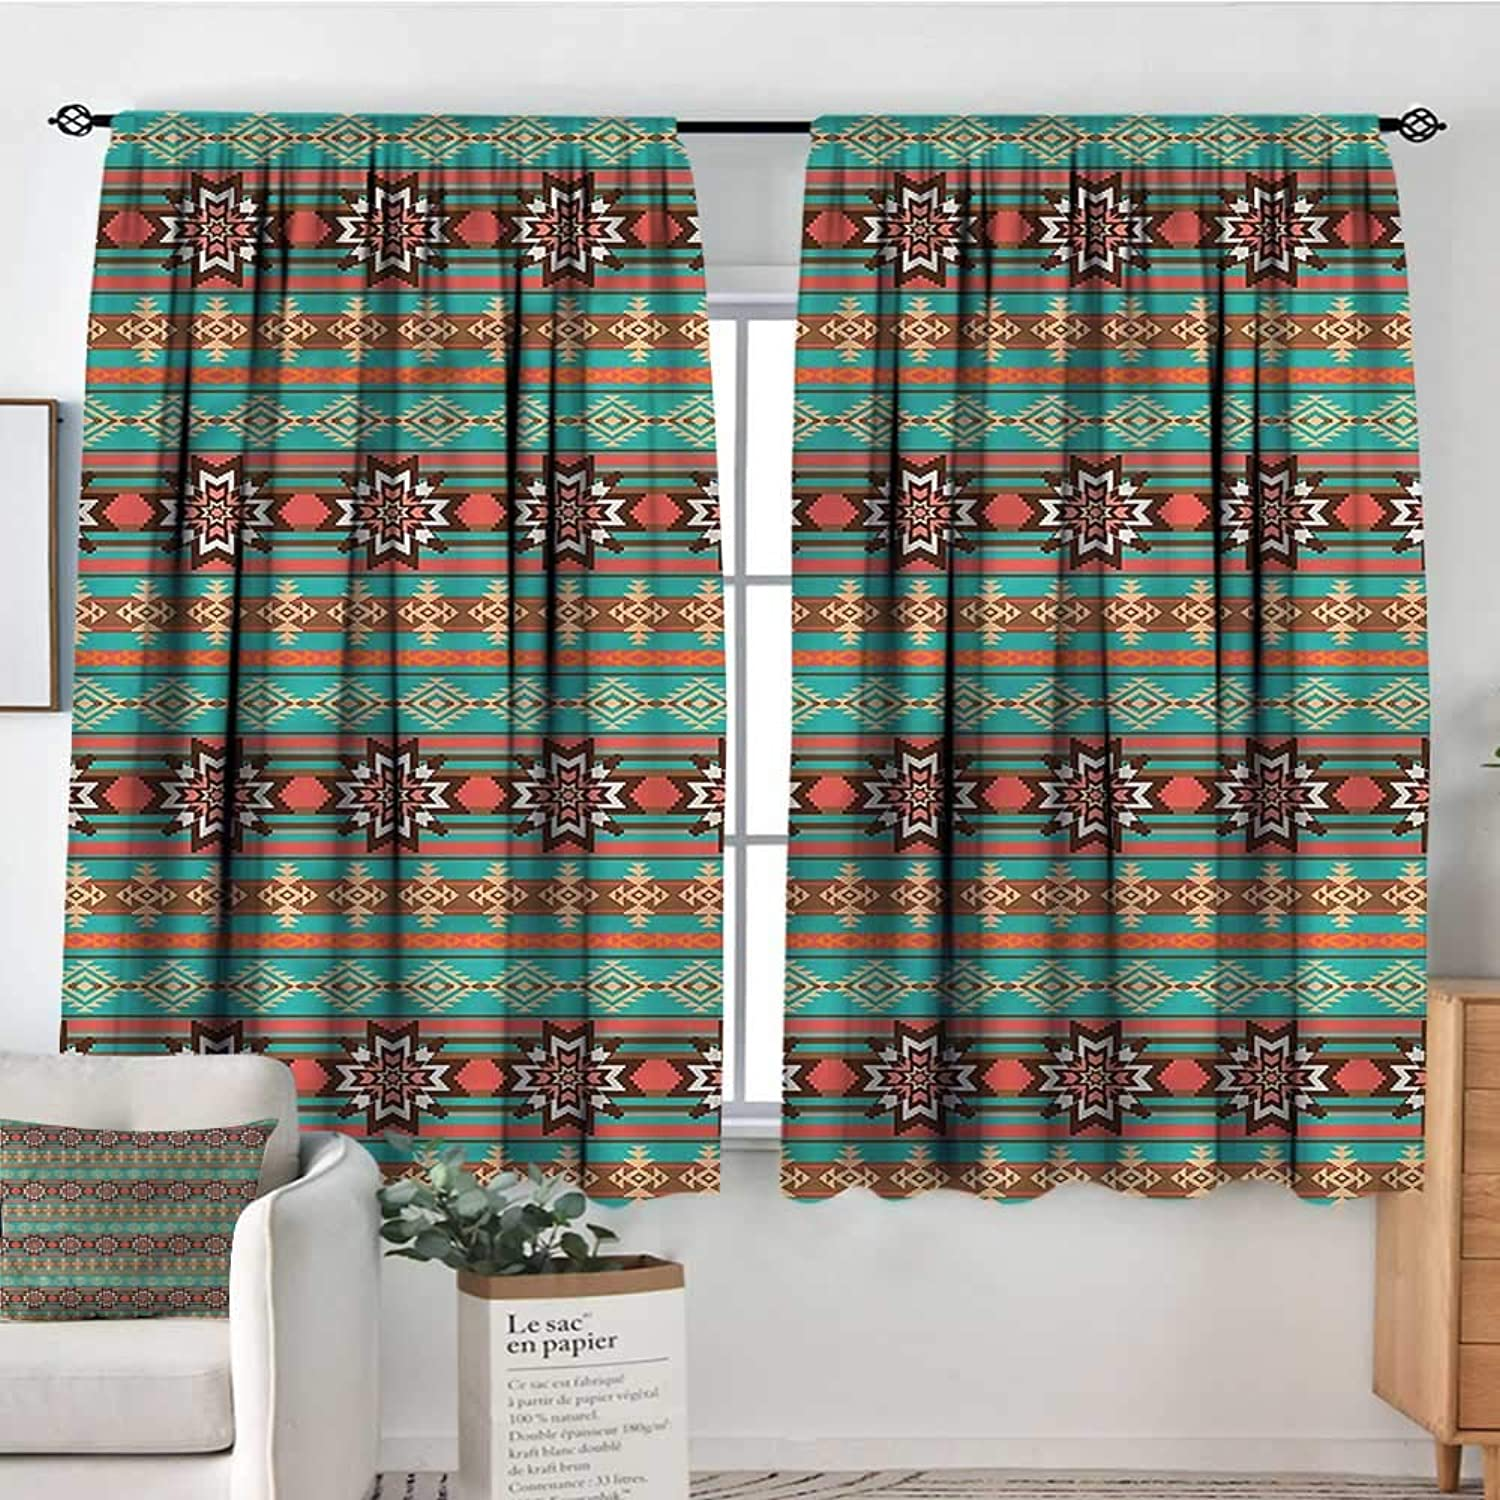 RenteriaDecor Aztec,Girs Room Backout Curtains Abstract Snowflake Motifs 42 X63  Therma Insuated Curtain Panes